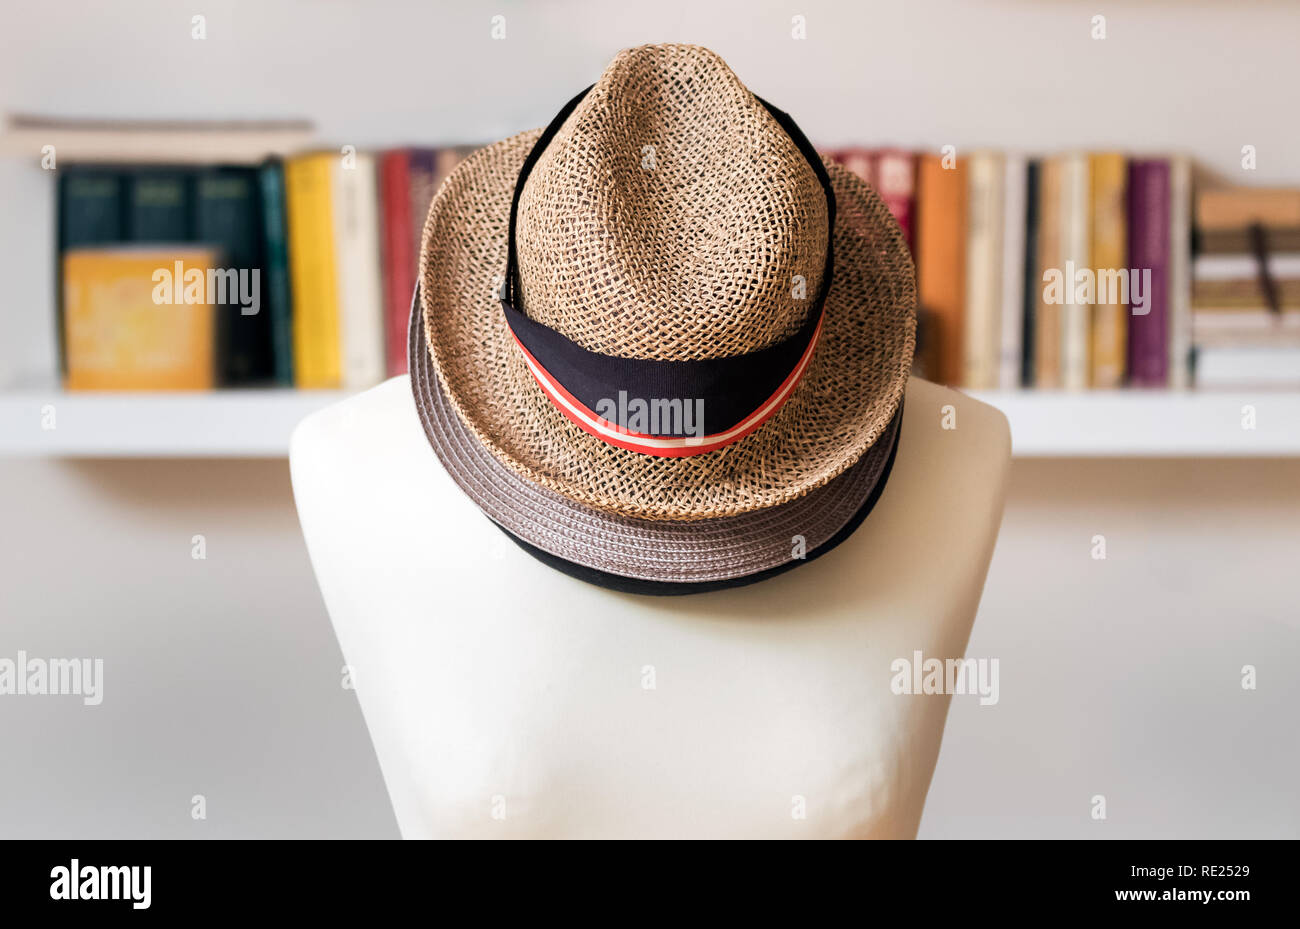 Three hats one on top of the other on a mannequin at home. - Stock Image